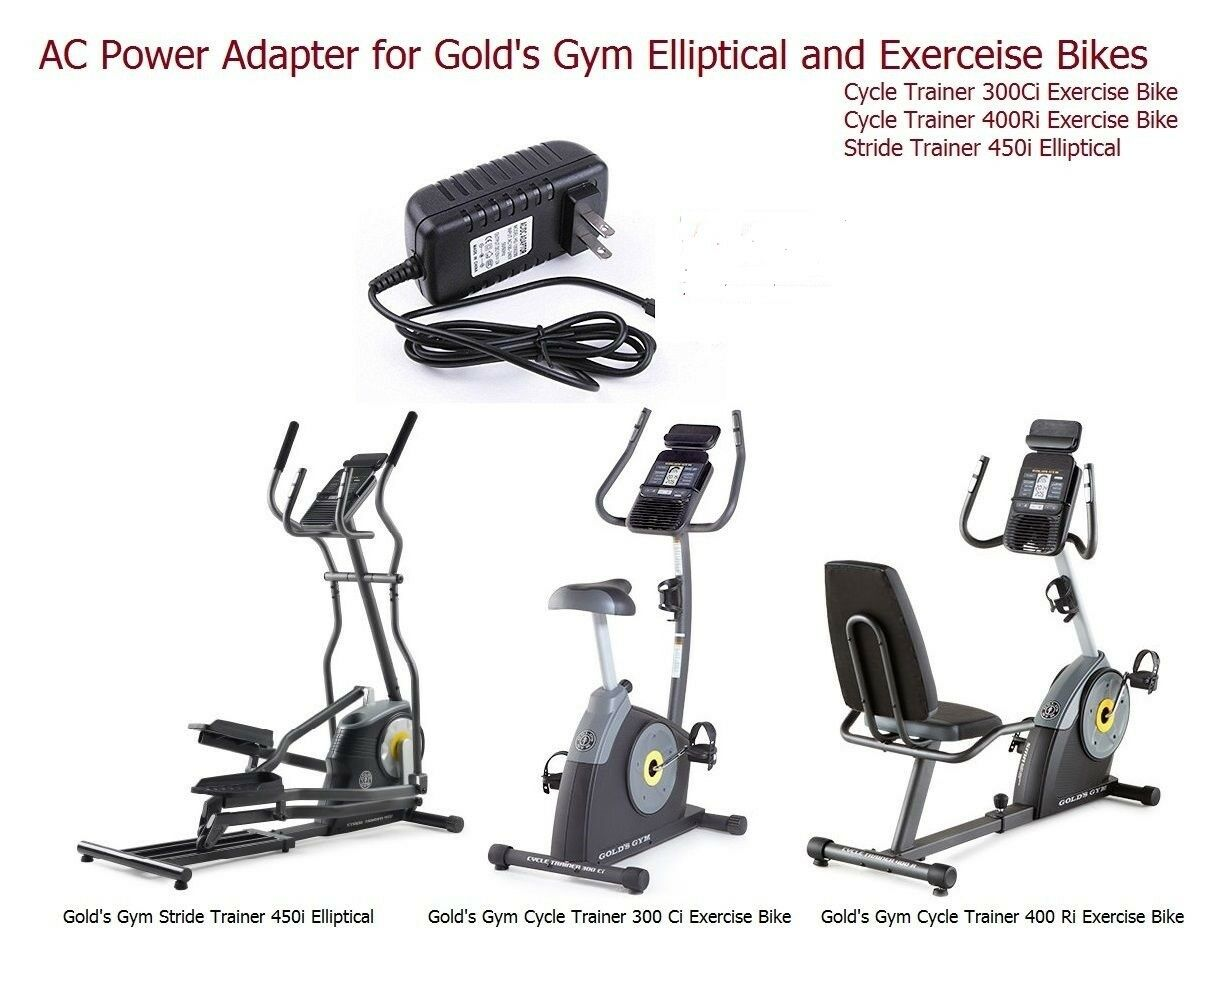 AC Adapter Power Supply for Gold's Gym Elliptical & Cycle Trainer Excerise Bikes